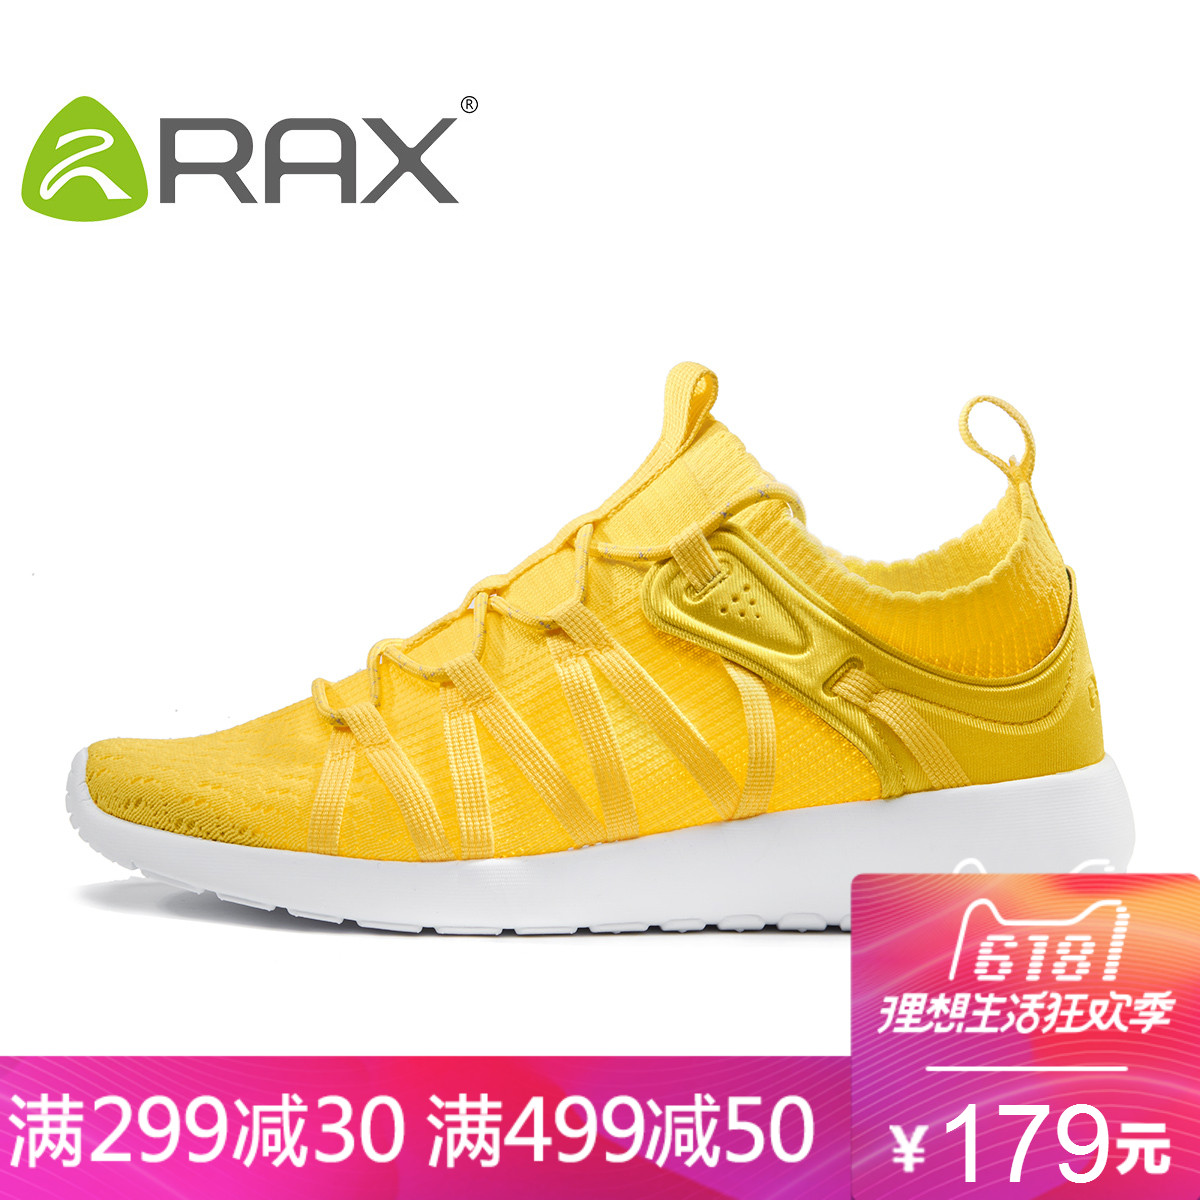 RAX spring and summer models breathable walking shoes women's outdoor shoes shock absorbers outdoor shoes casual climbing mountaineering shoes